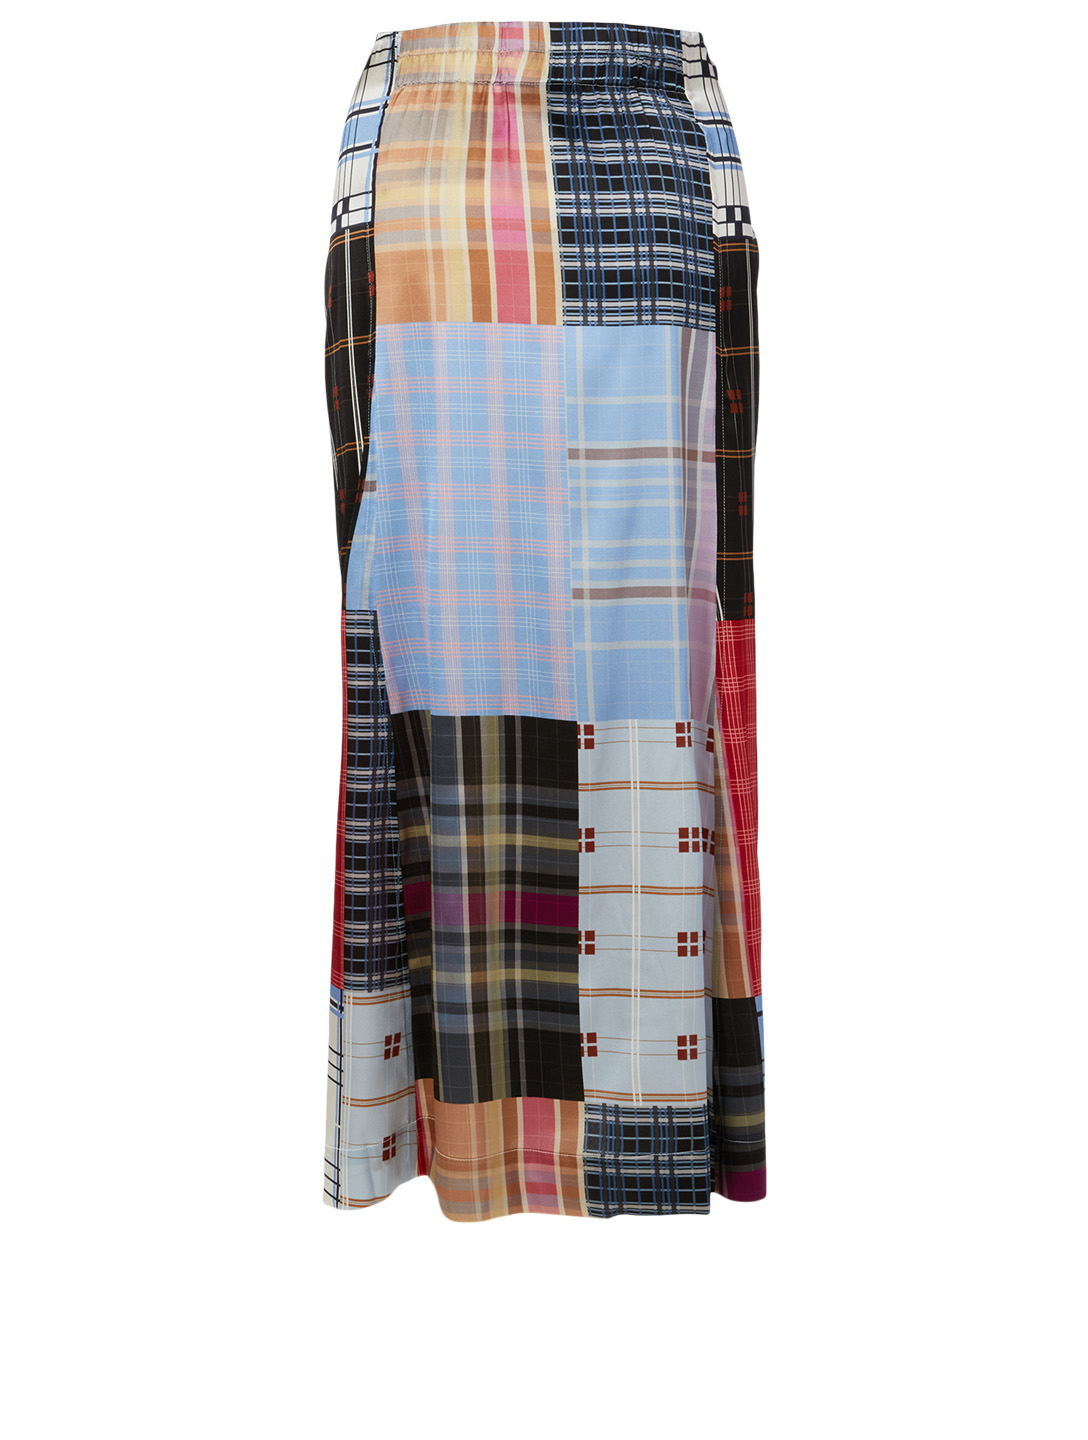 GANNI Silk Stretch Skirt In Patchwork Print Women's Blue